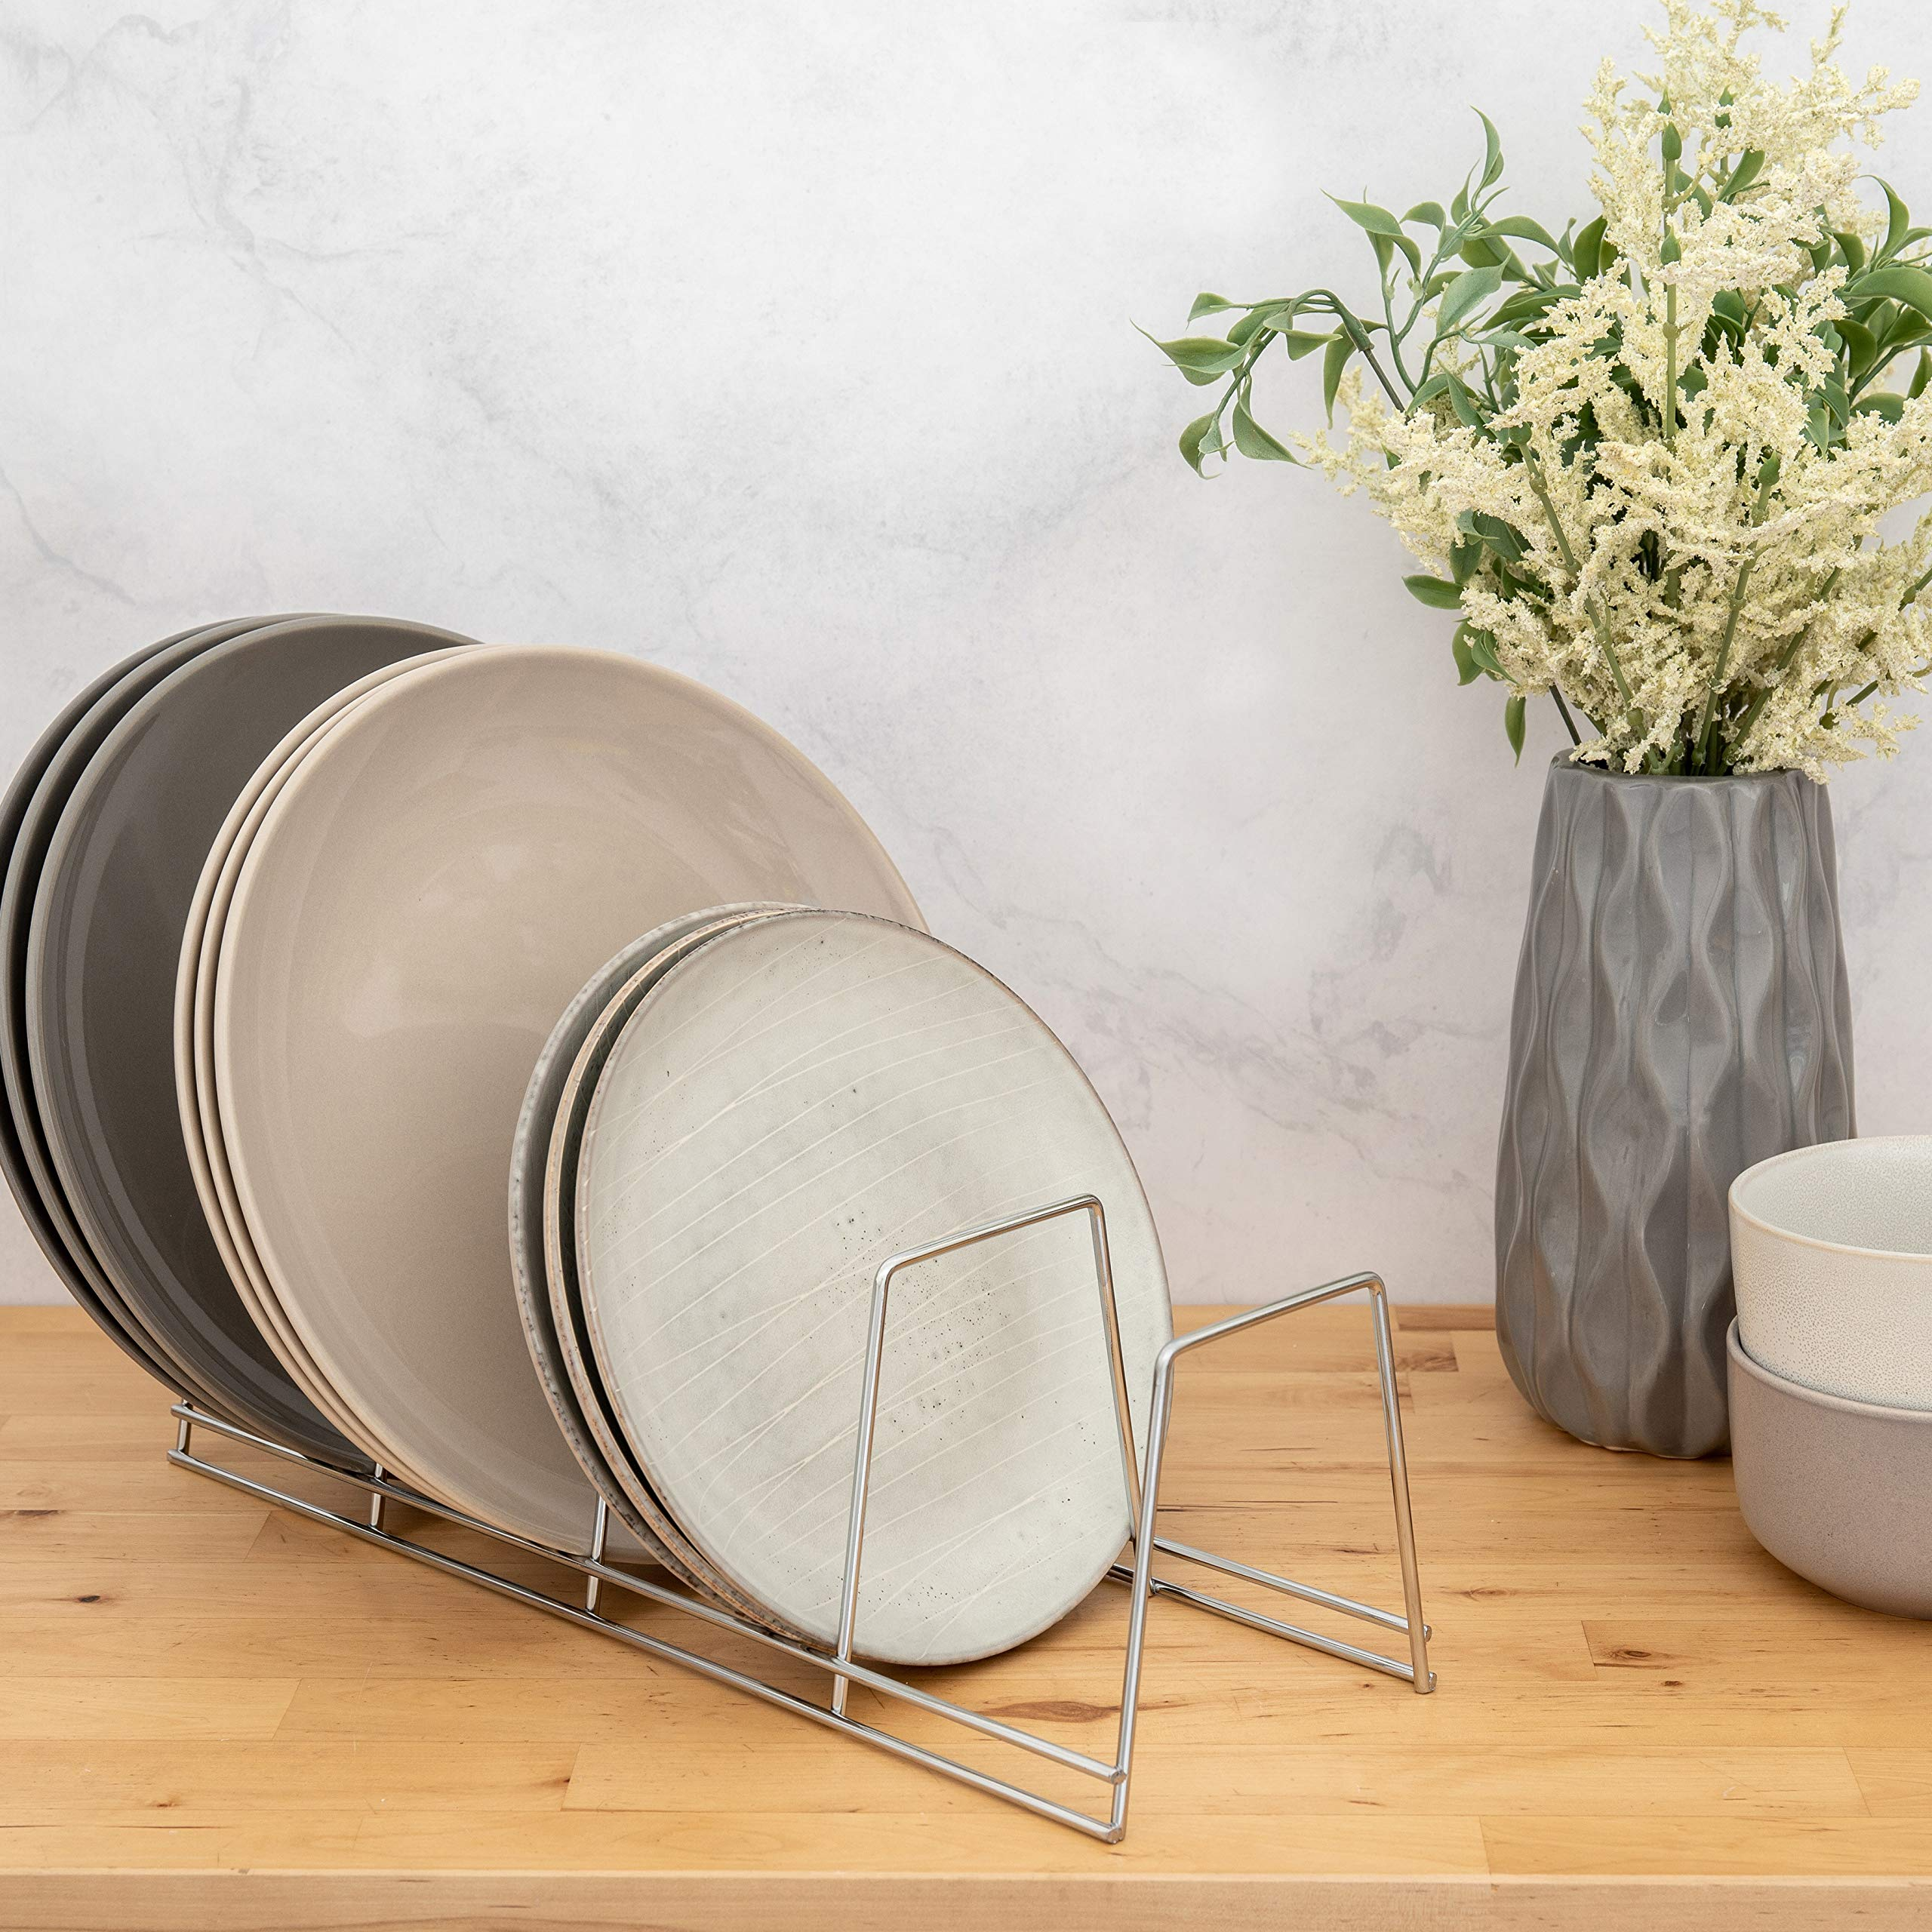 Better Houseware 4-Section Plate Rack, Large, Chrome by Better Houseware (Image #2)